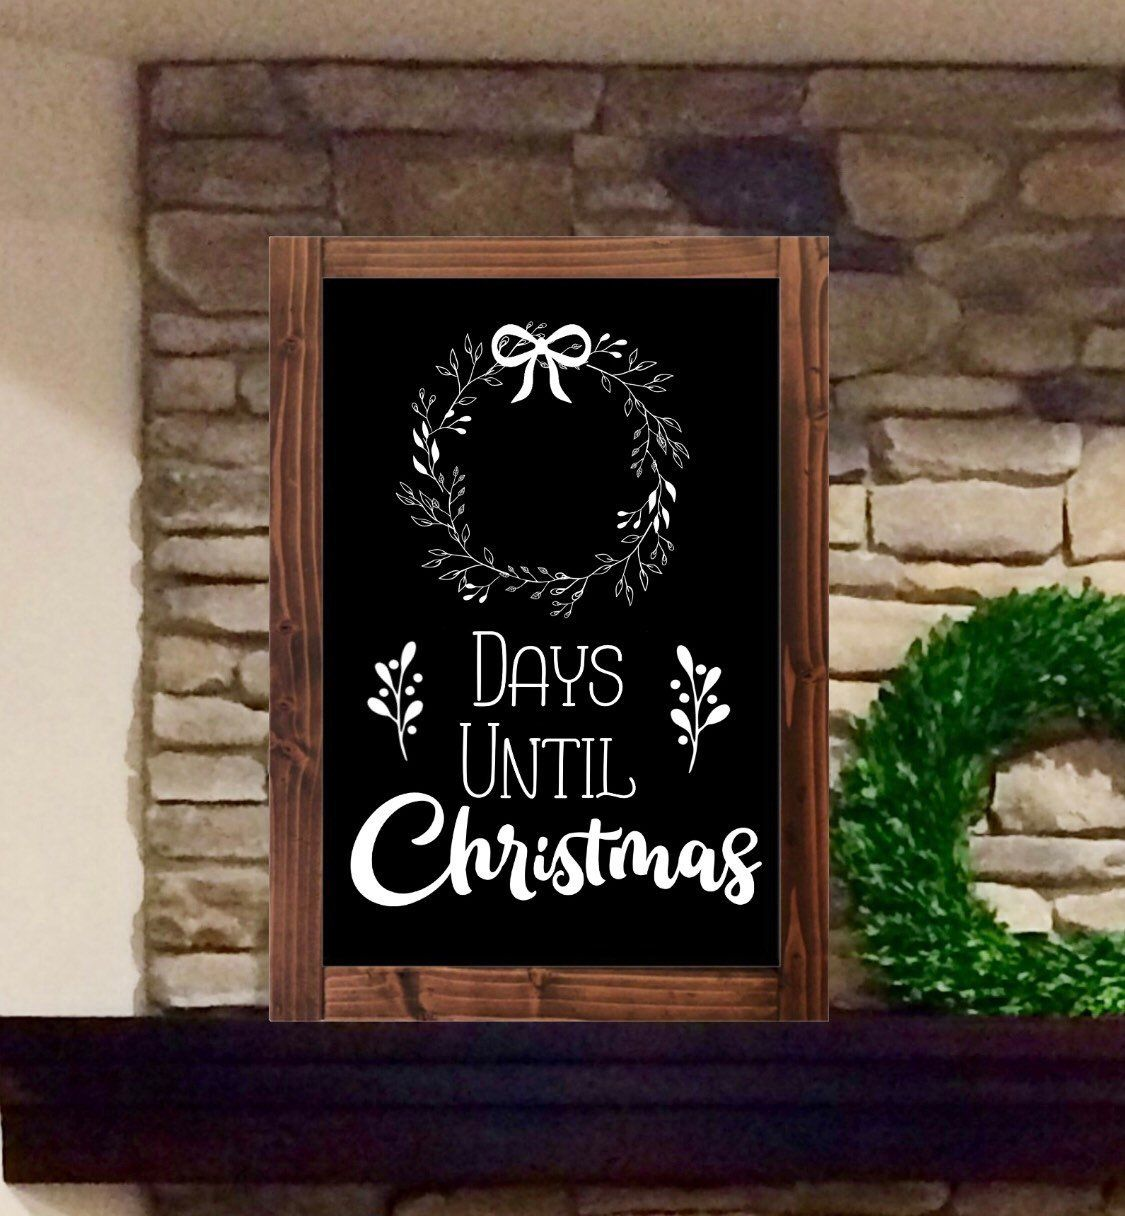 Days Till Christmas Chalkboard.Christmas Countdown Chalkboard Sign Advent Calendar By